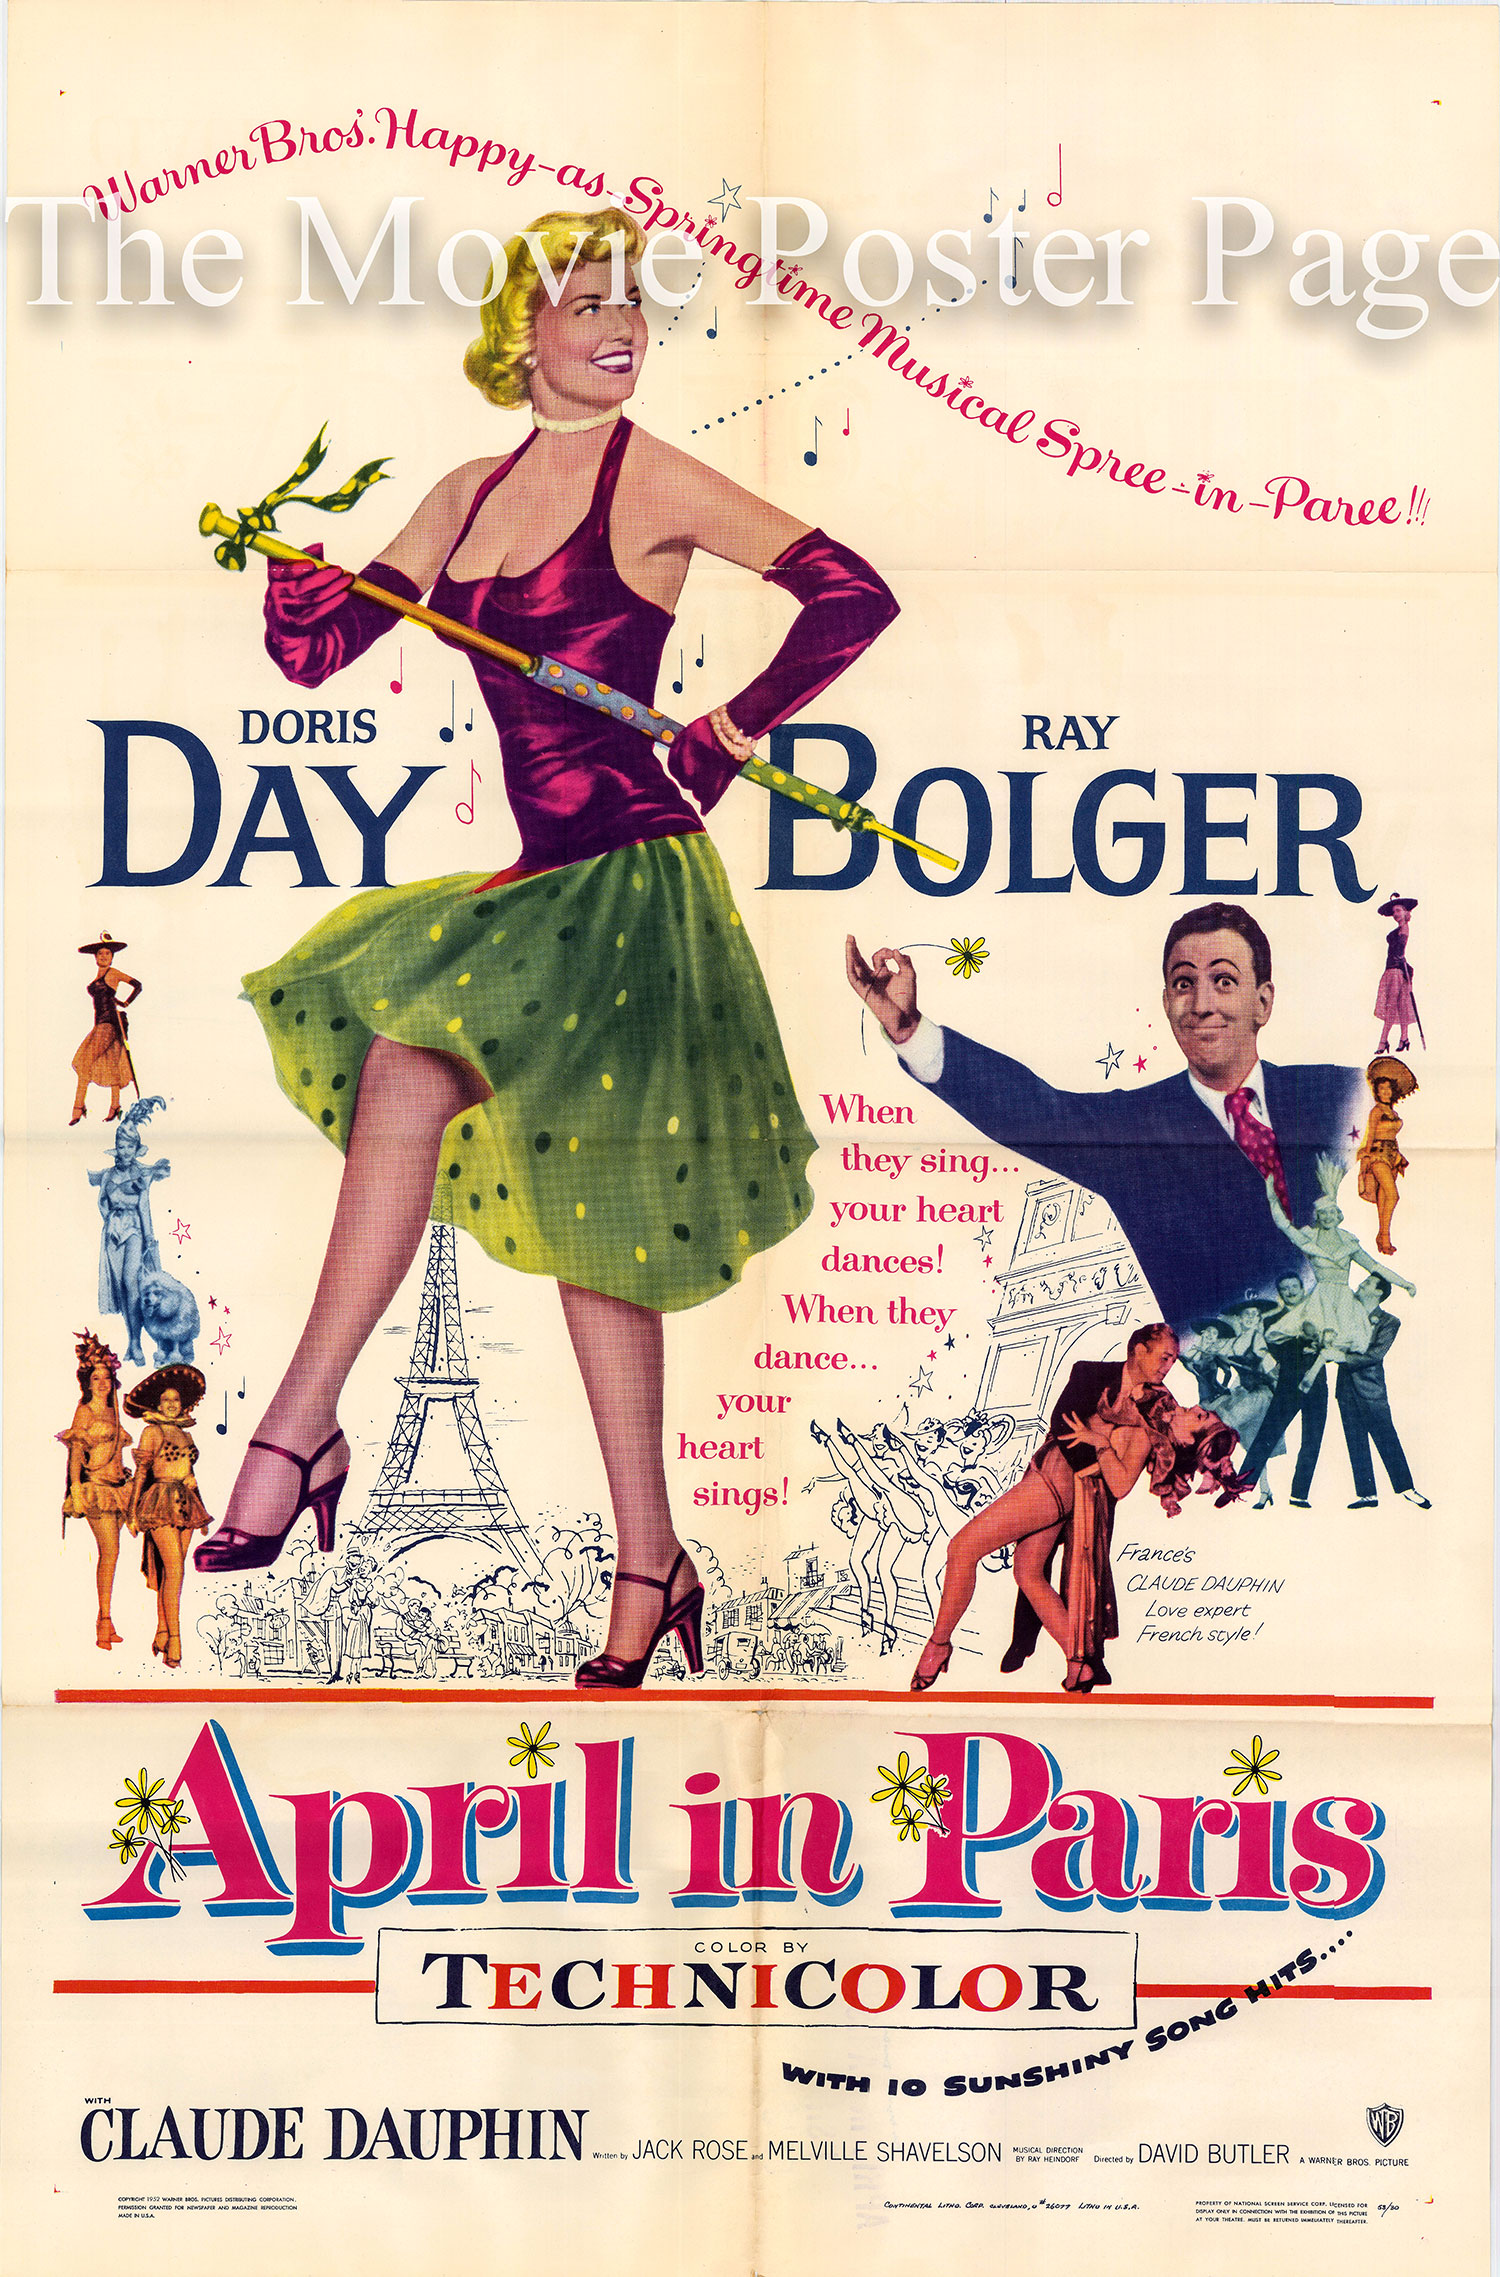 Pictured is a US one-sheet poster for the 1952 Ray Butler film April in Paris starring Doris Day and Ray Bolger.